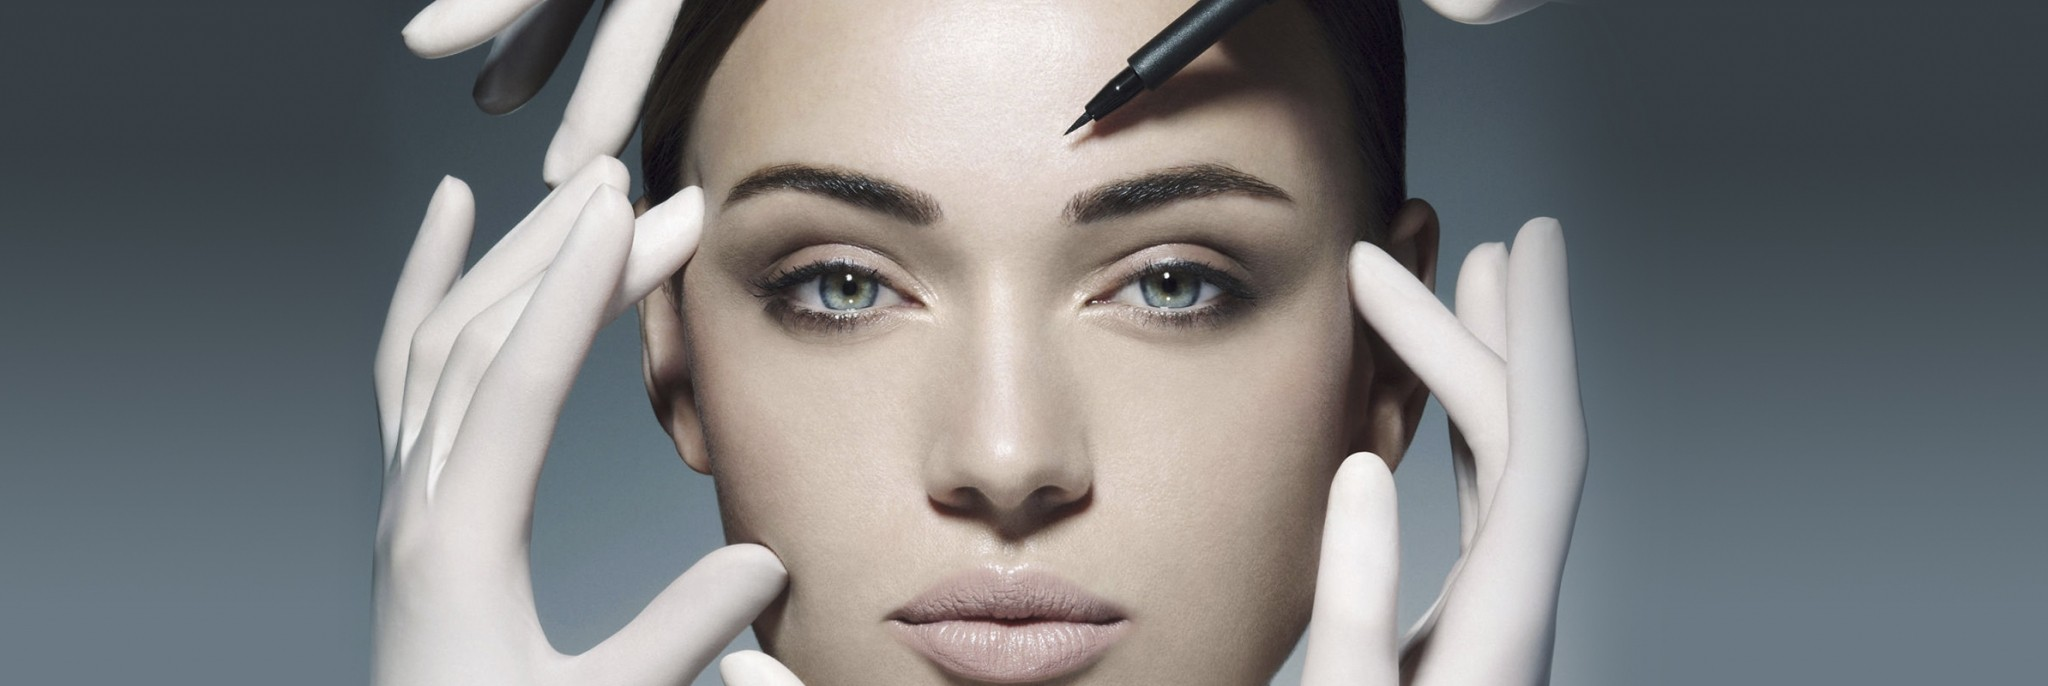 Dubai Women on All Things Botox